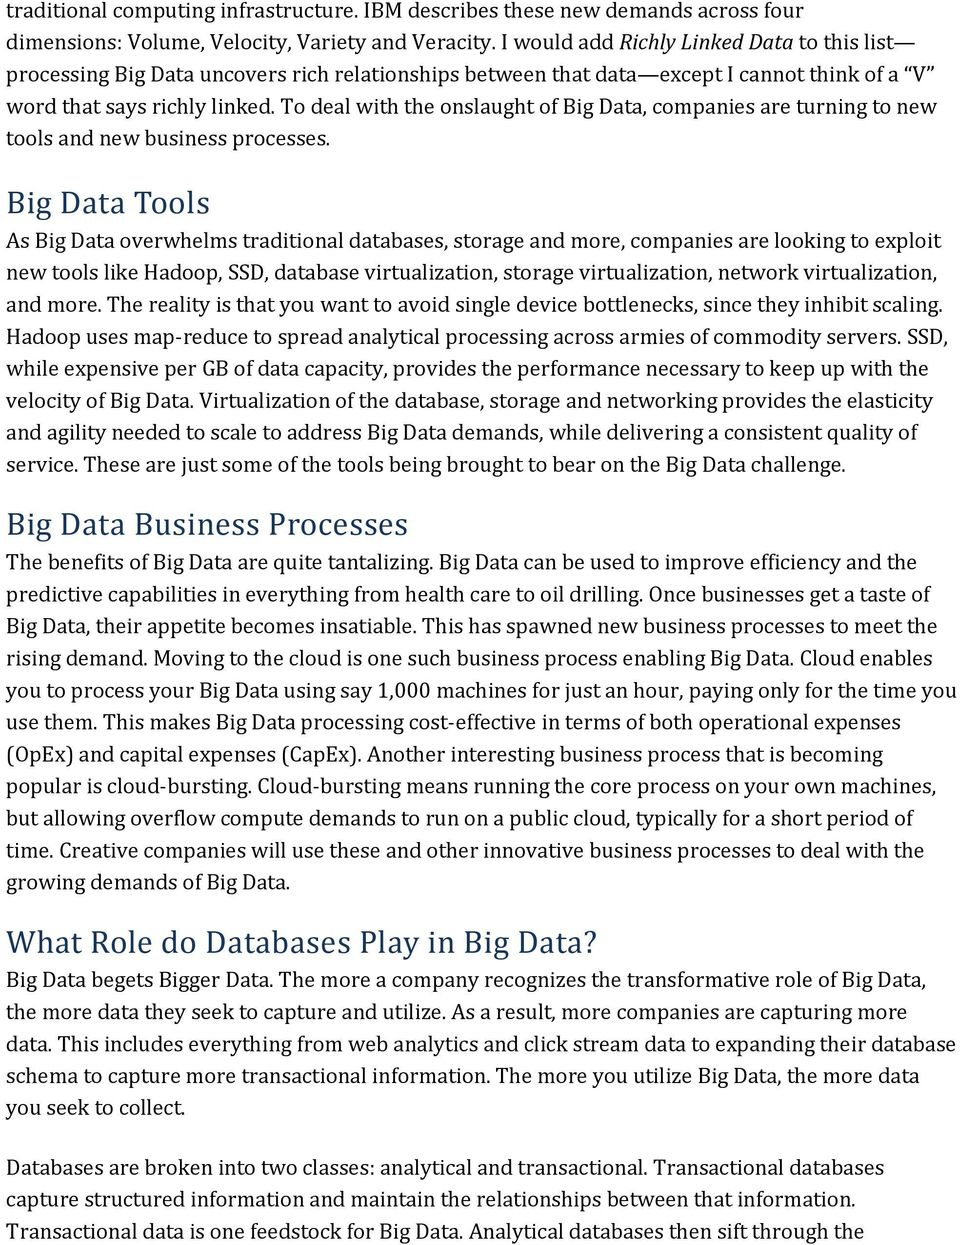 To deal with the onslaught of Big Data, companies are turning to new tools and new business processes.